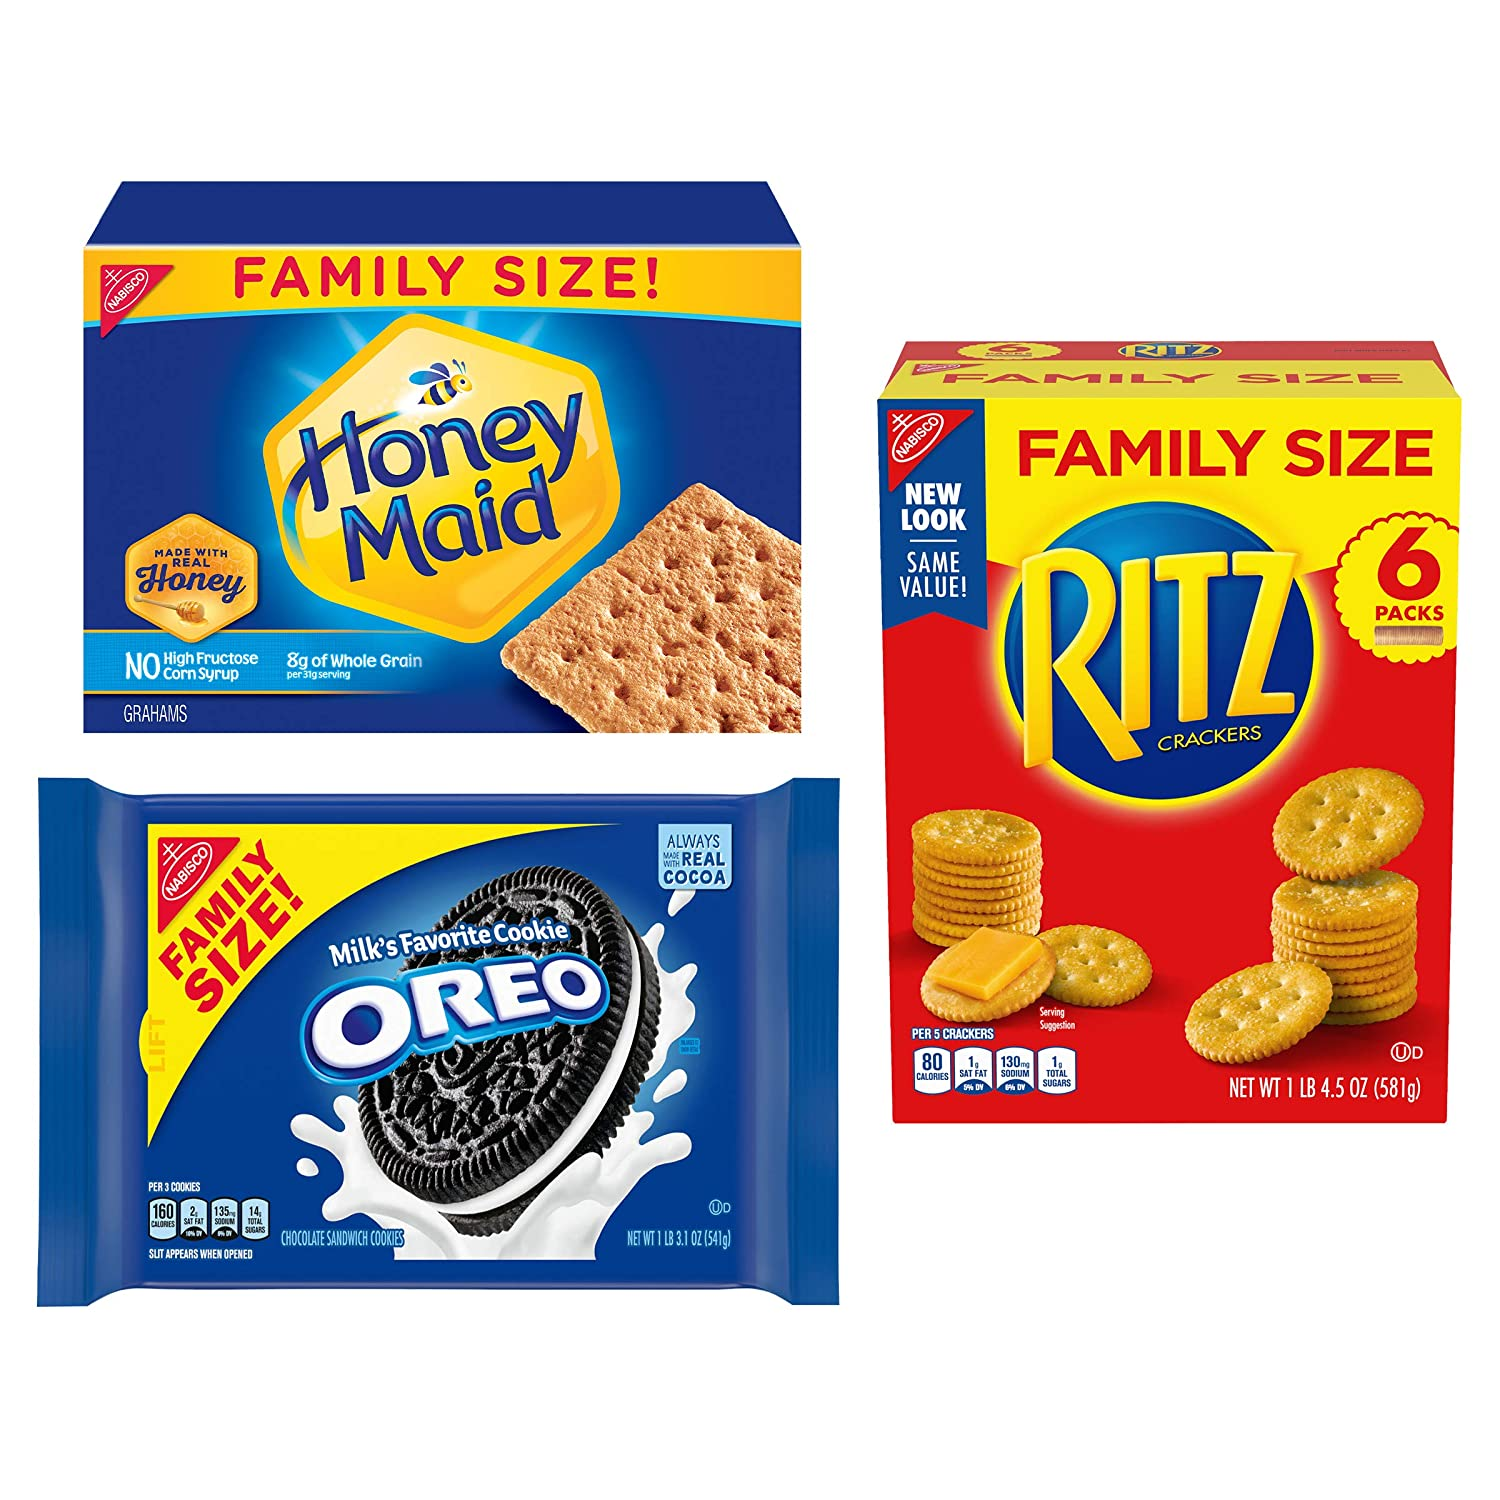 OREO, RITZ, & Honey Maid Snack Variety Pack, Family Size - 3 Packs